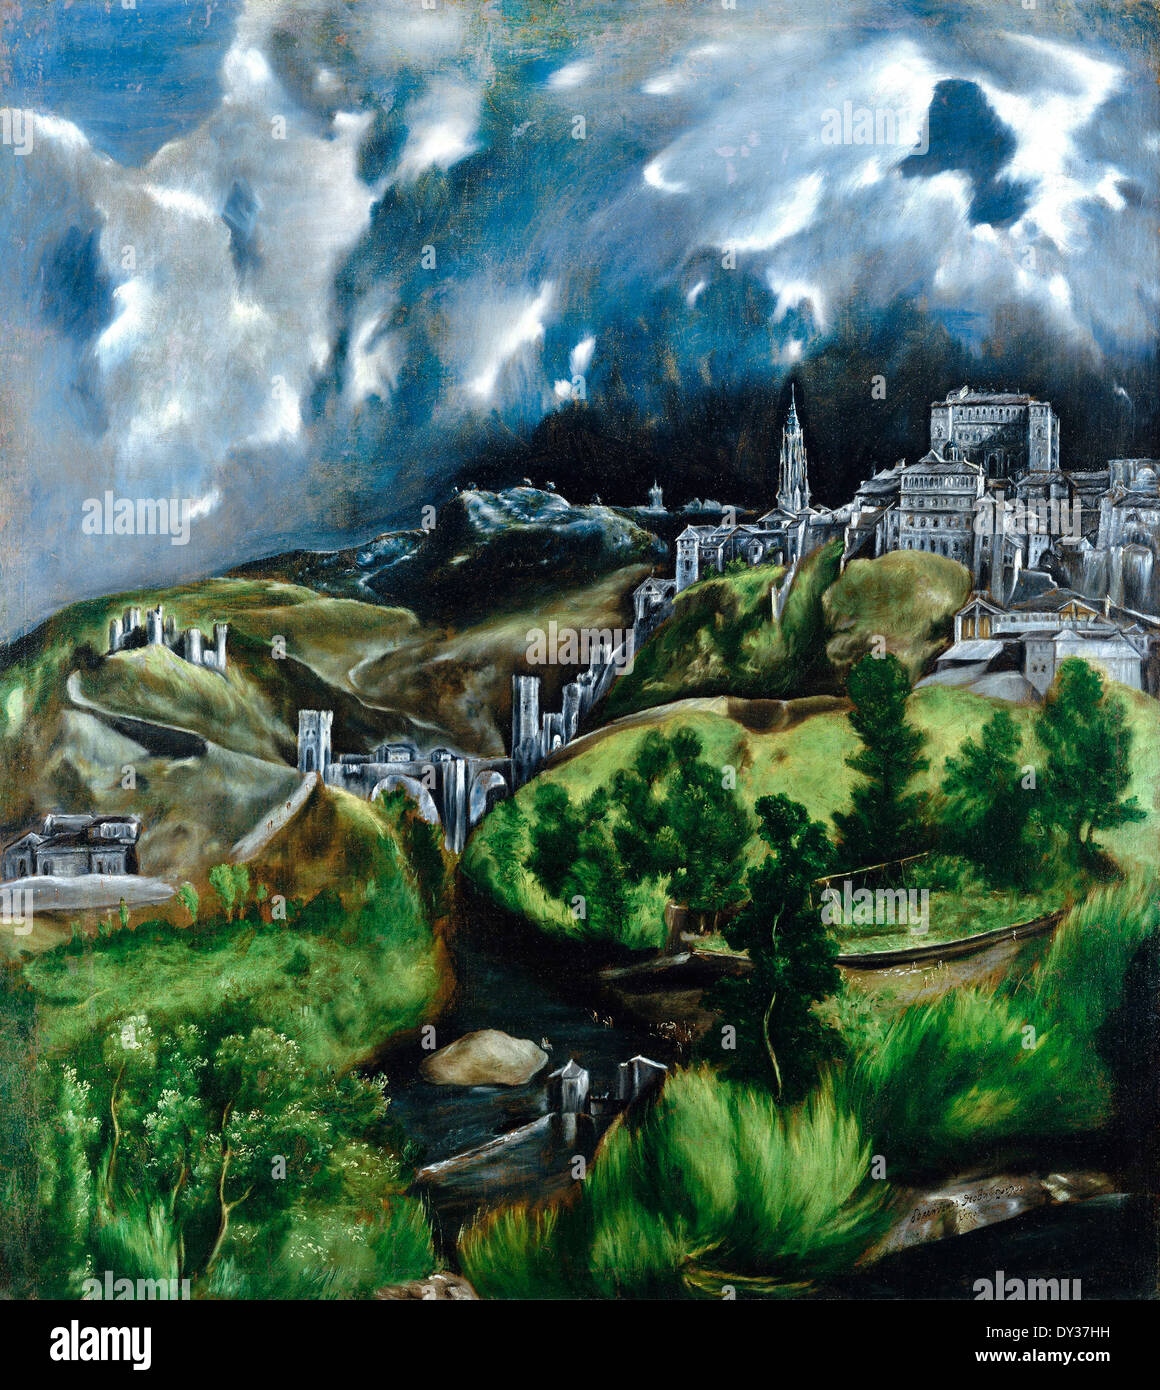 an assessment of the painting the view of toledo by el greco 10 paintings and artworks by el greco you should know marcelina morfin updated: 12 july 2018  the disrobing of christ is located in the sacristy of the cathedral in toledo, spain el greco moved to toledo in the mid to late 1570s,  view of toledo (c 1598-99.